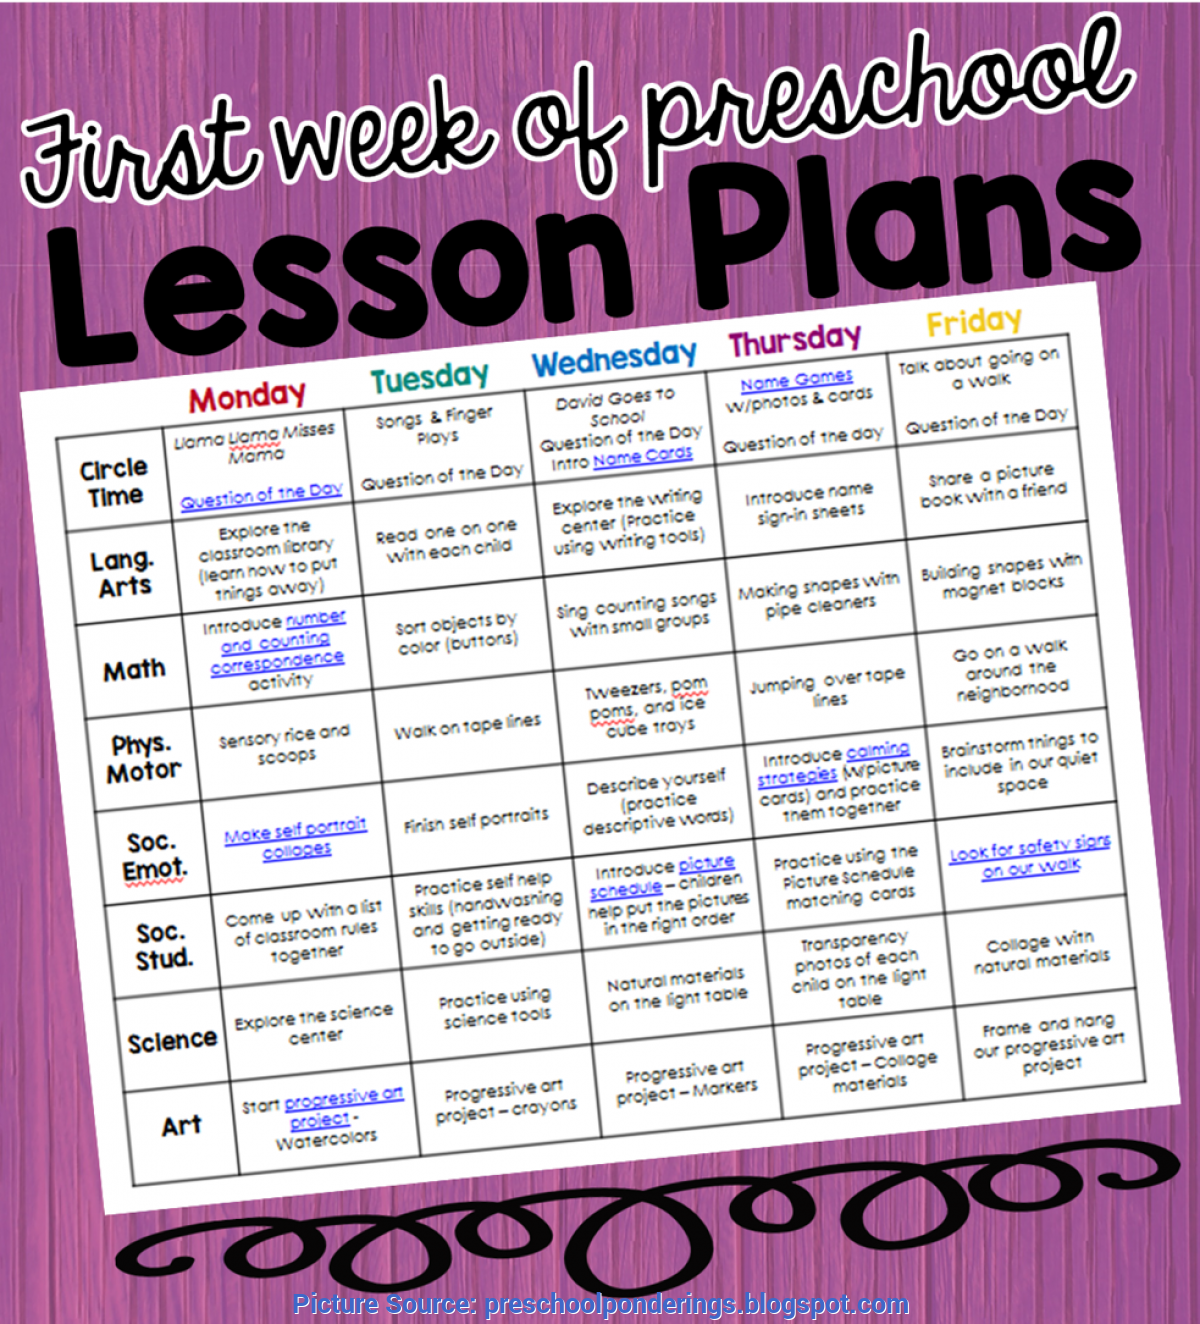 Top Naeyc Lesson Plans For Toddlers Preschool Ponderings: My Lesson Plans For The First Week Of Presc